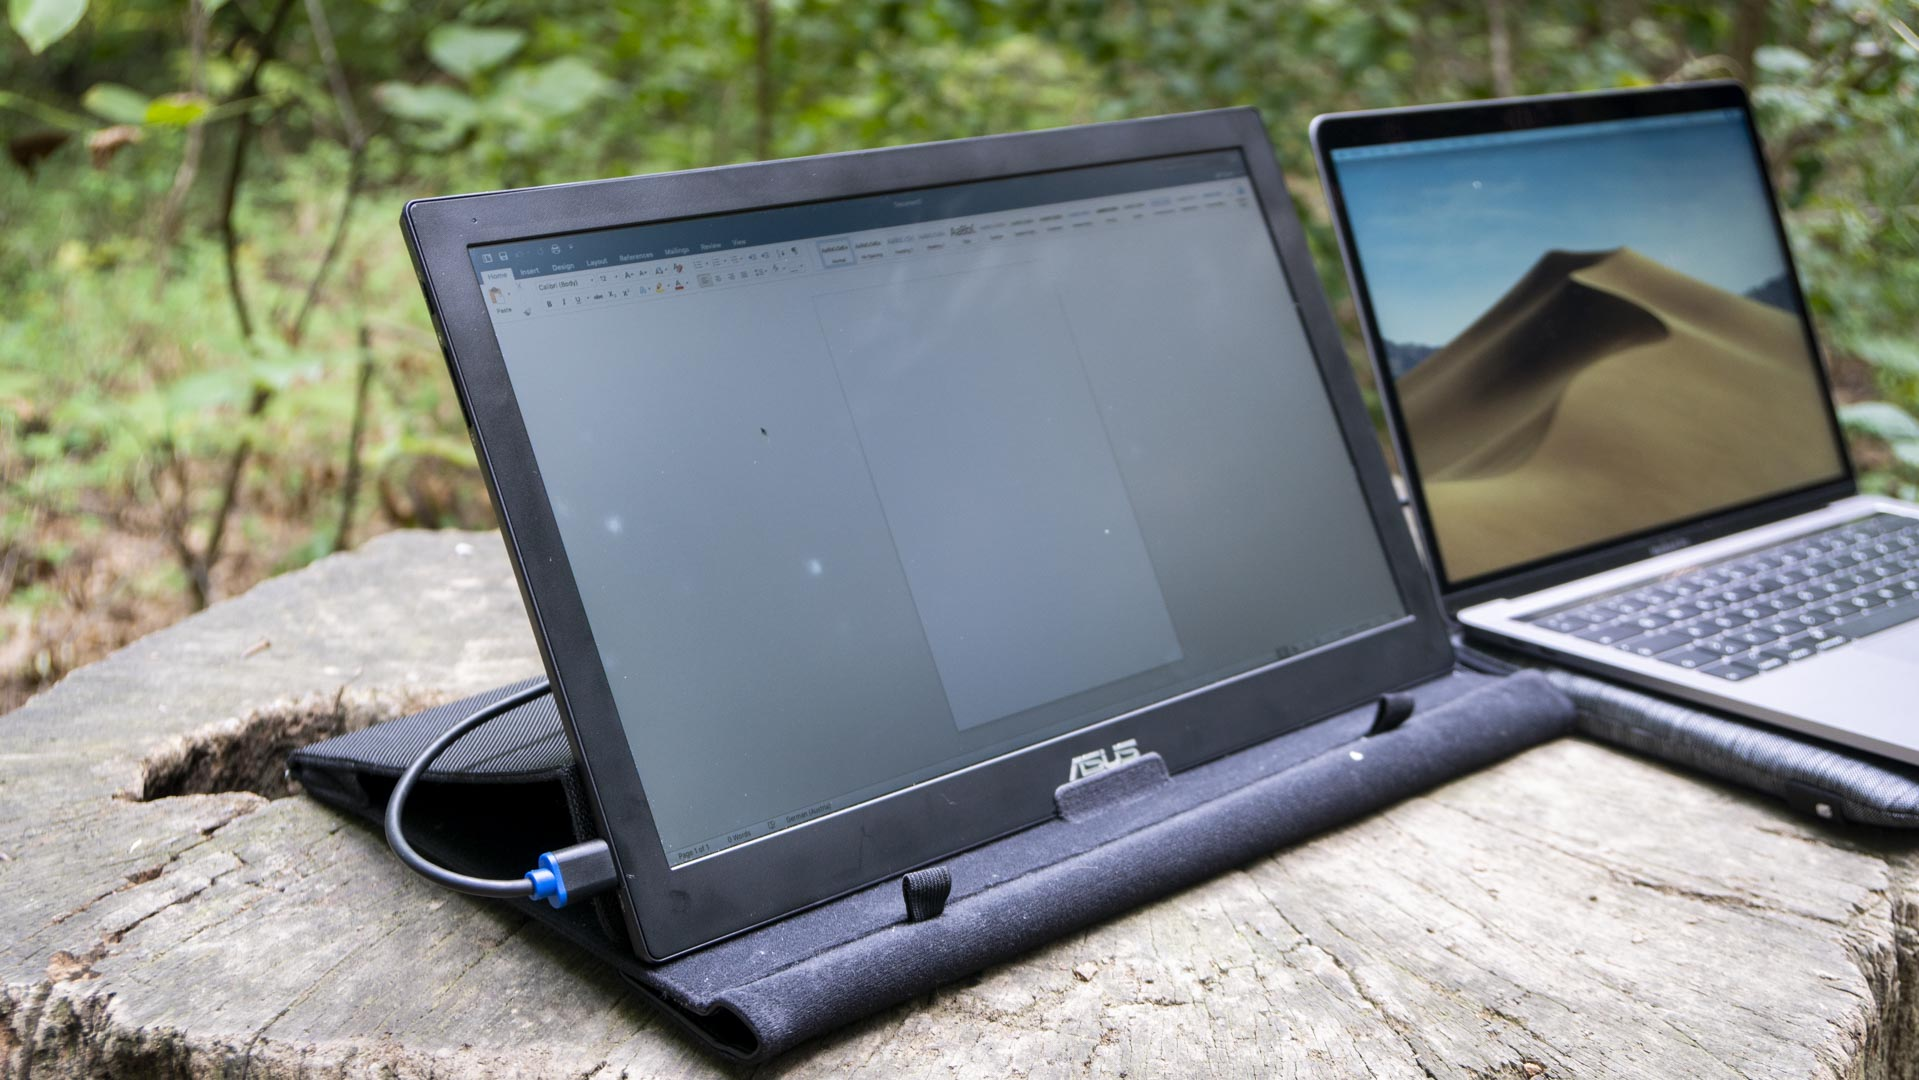 Asus MB169B+ portable monitor for macbook pro